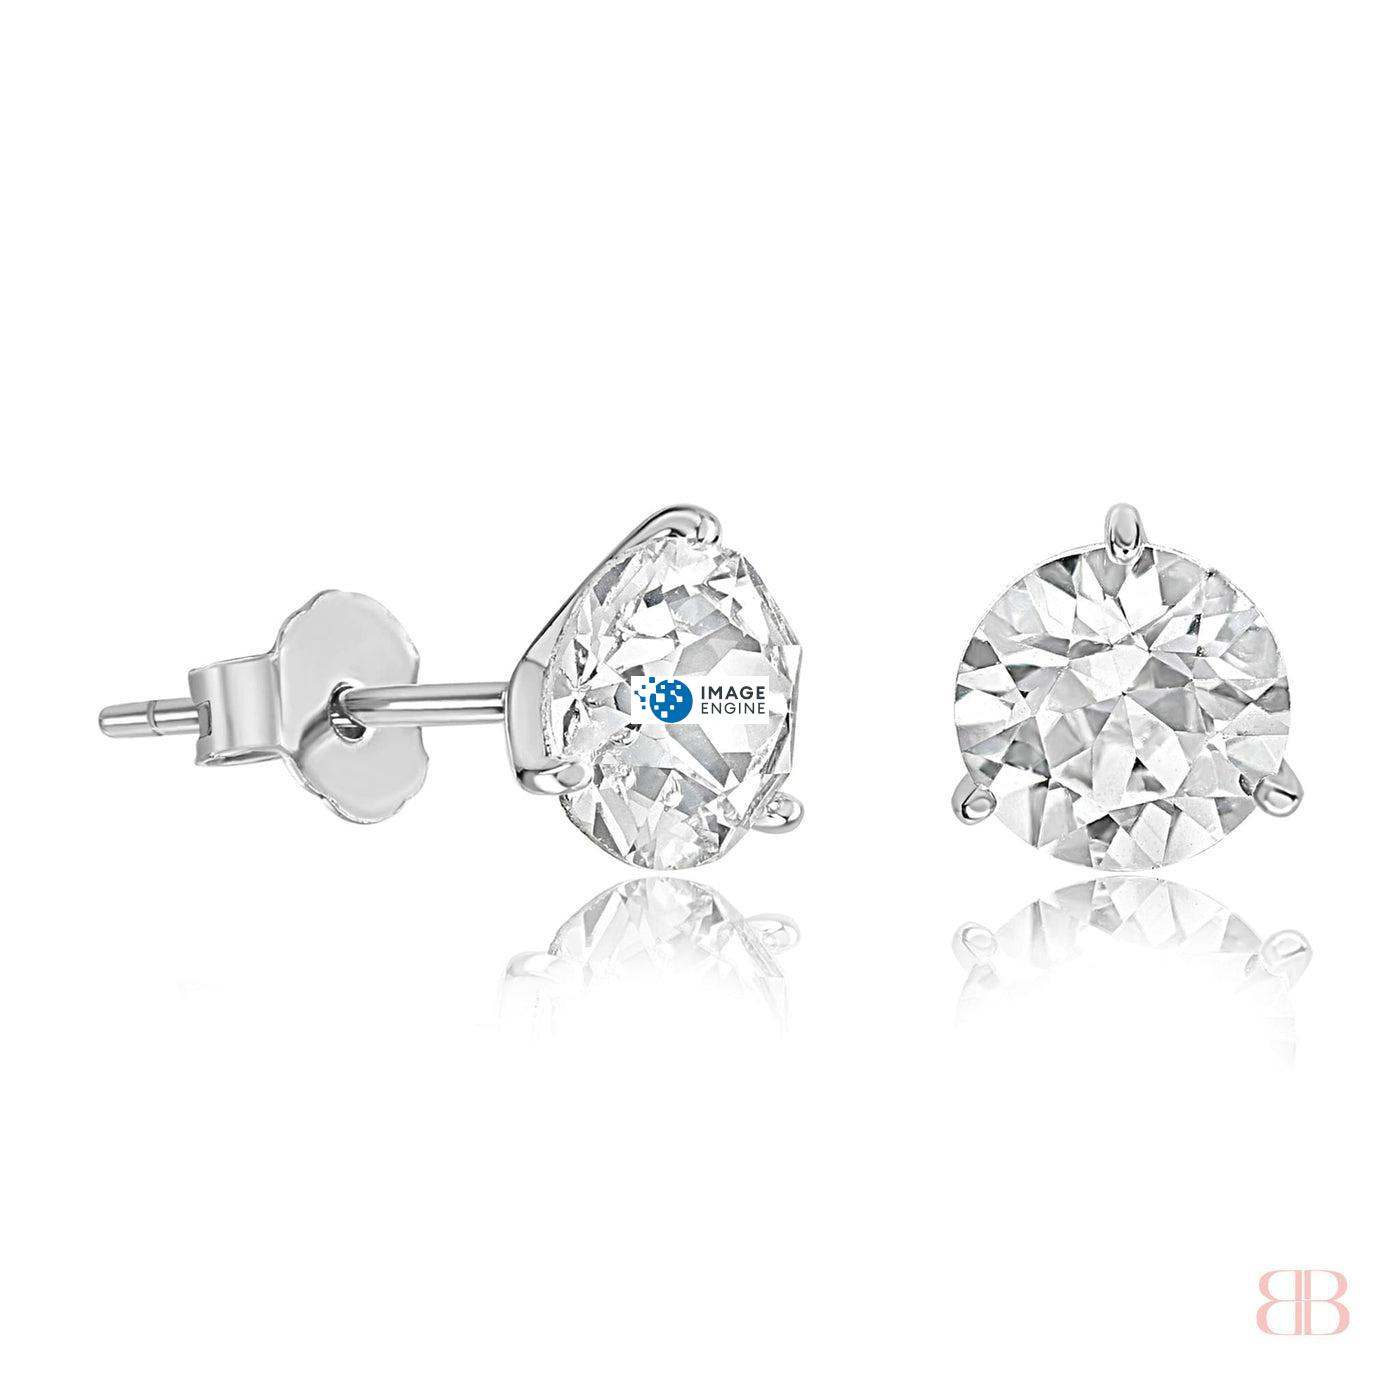 Swarovski Stud Earrings - Facing to the Right Up - 925 Sterling Silver